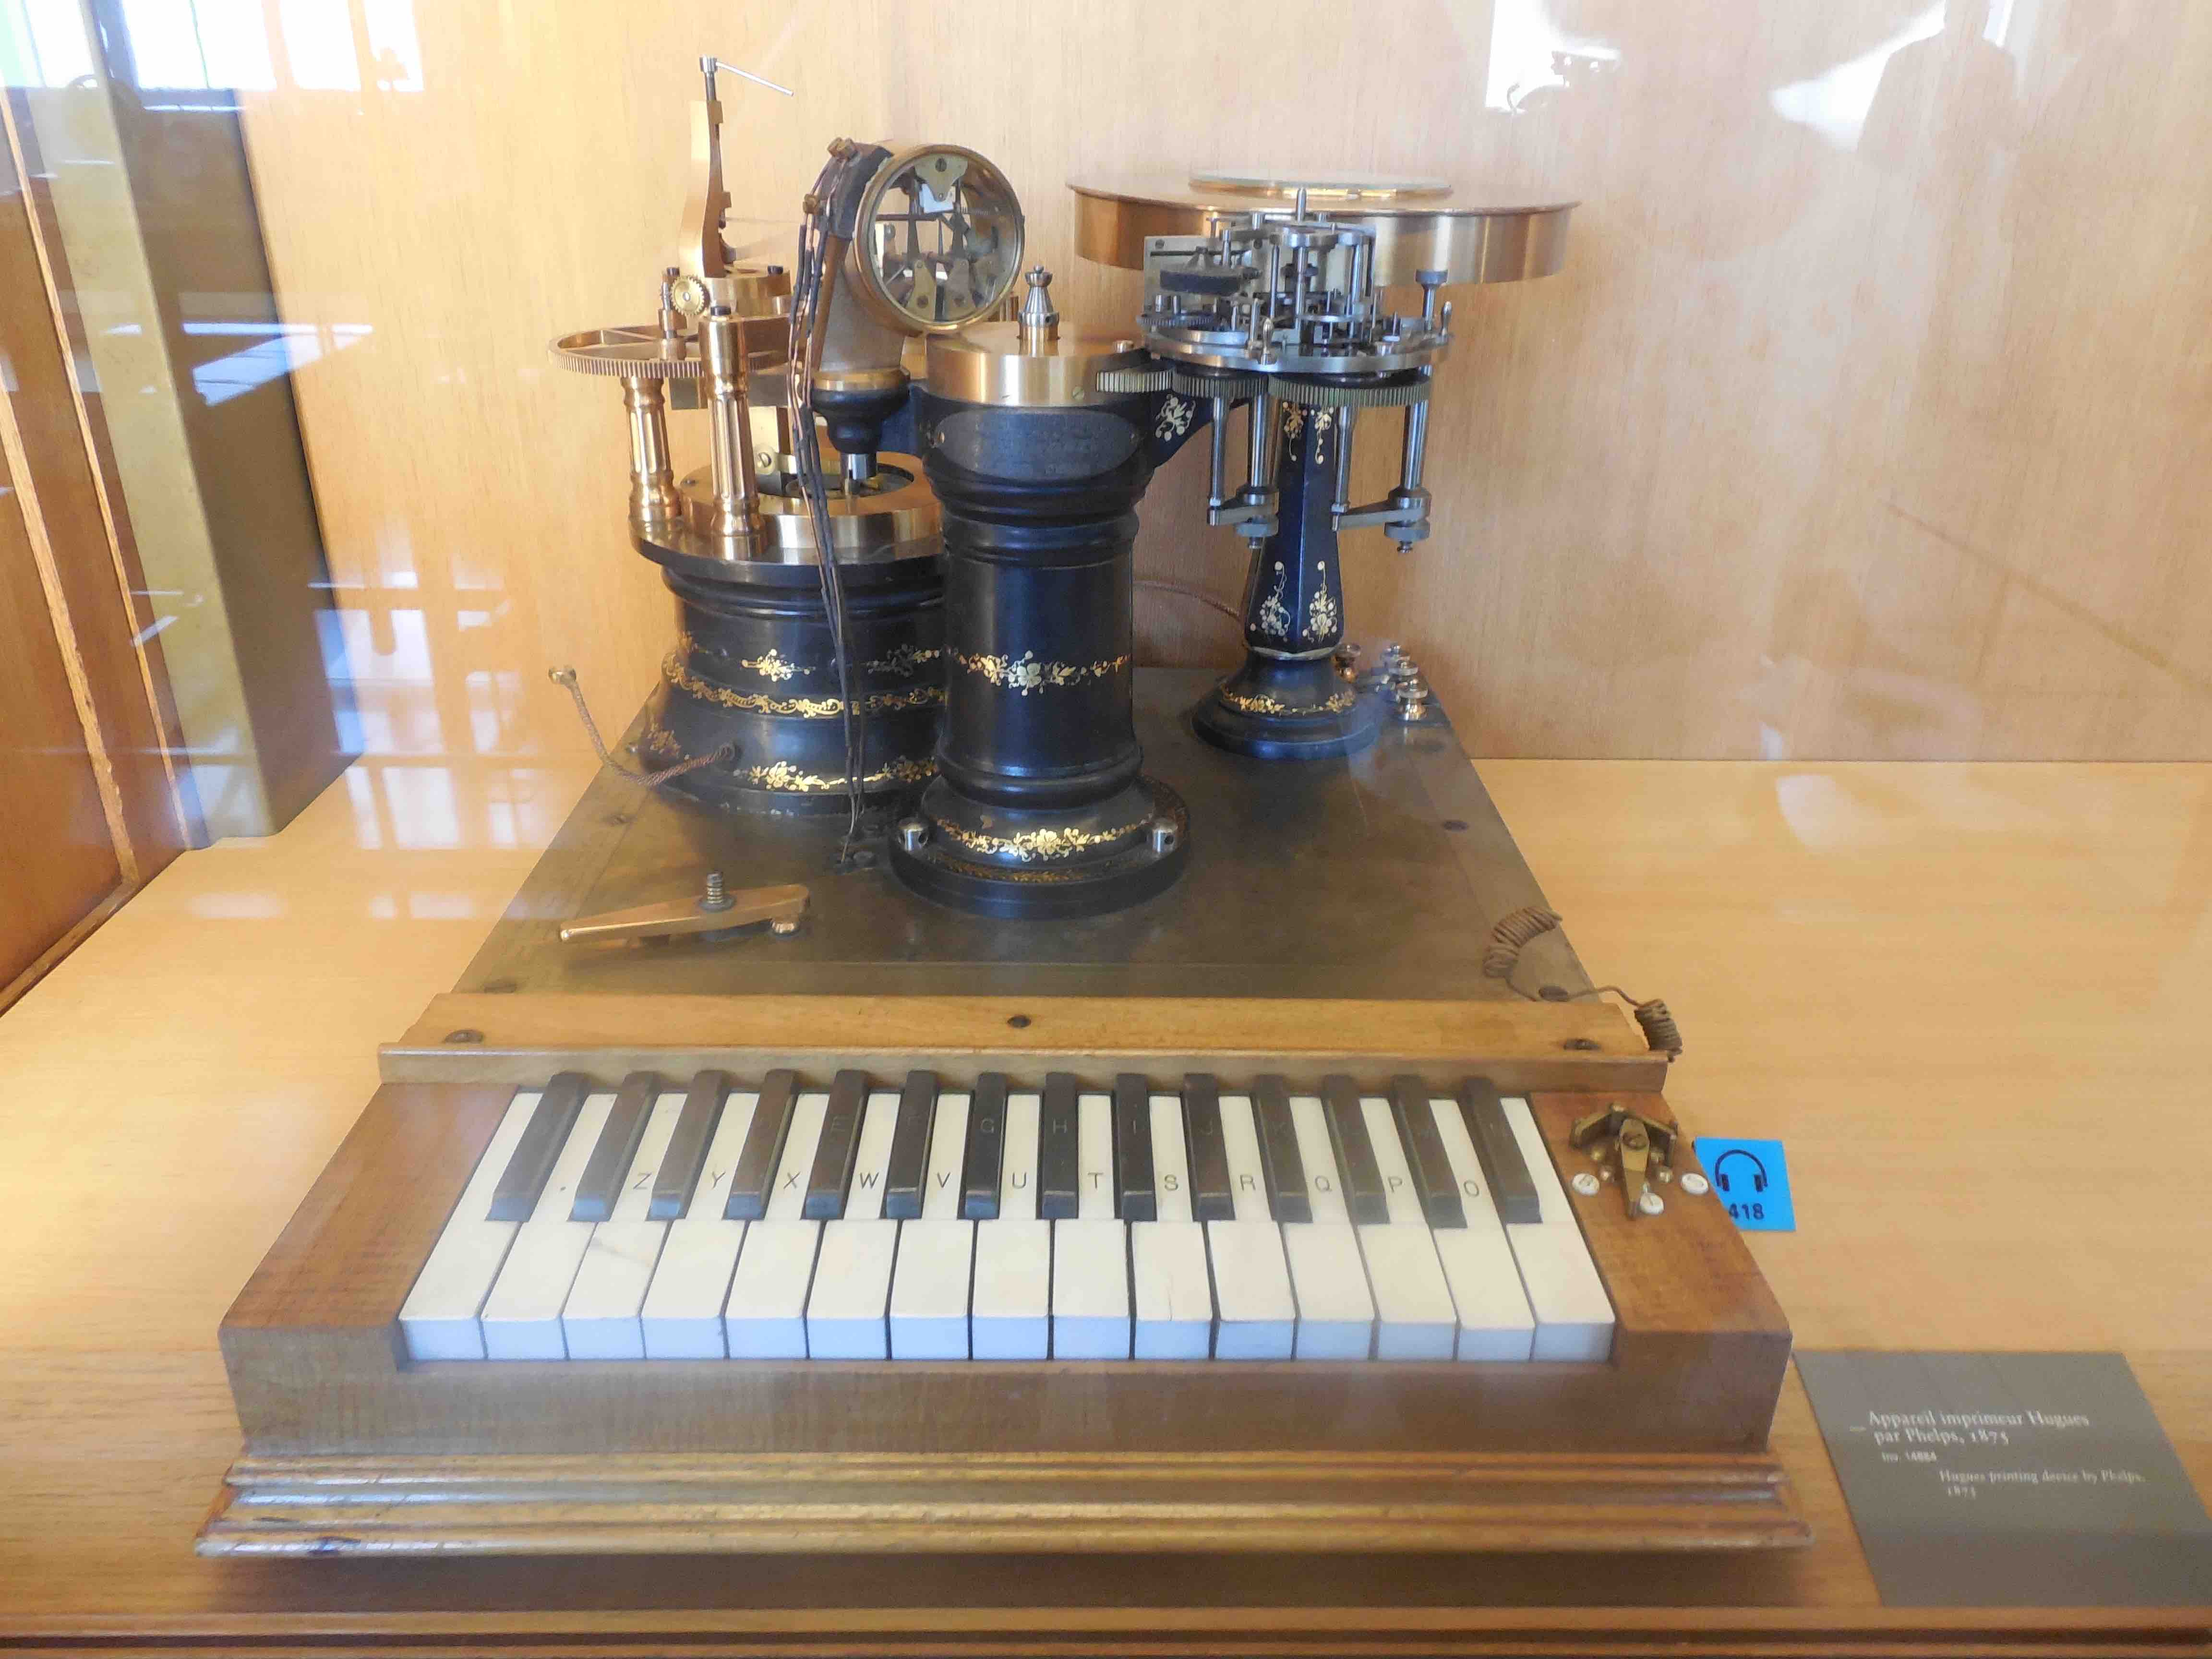 a Hughes teleprinter with piano-style keyboard, circa 1975, in the CNAM museum, Paris